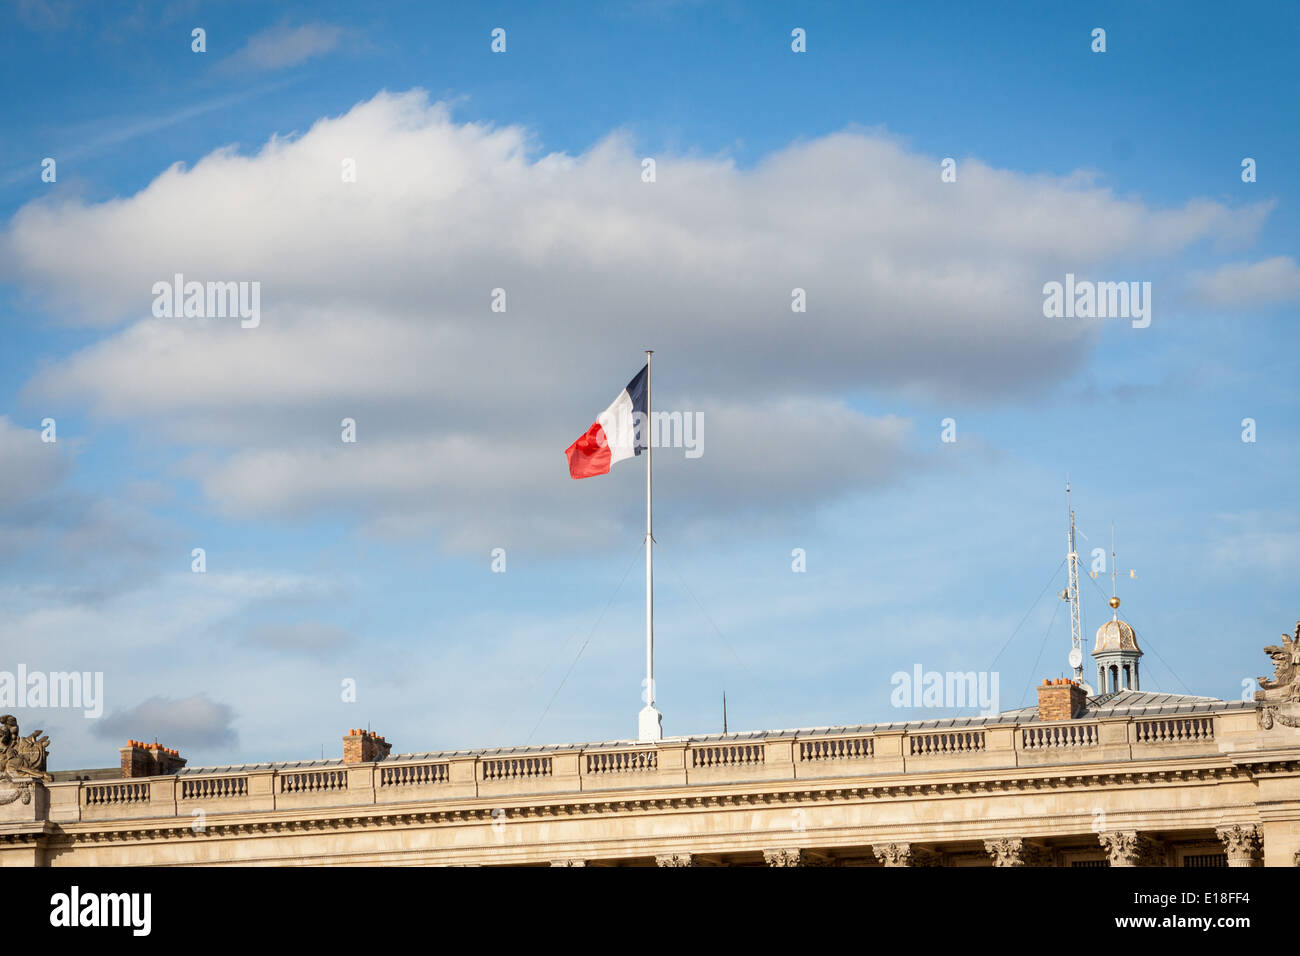 Flag of France fluttering on a pole placed on the top of a vintage building, under a serene blue sky with white clouds - Stock Image